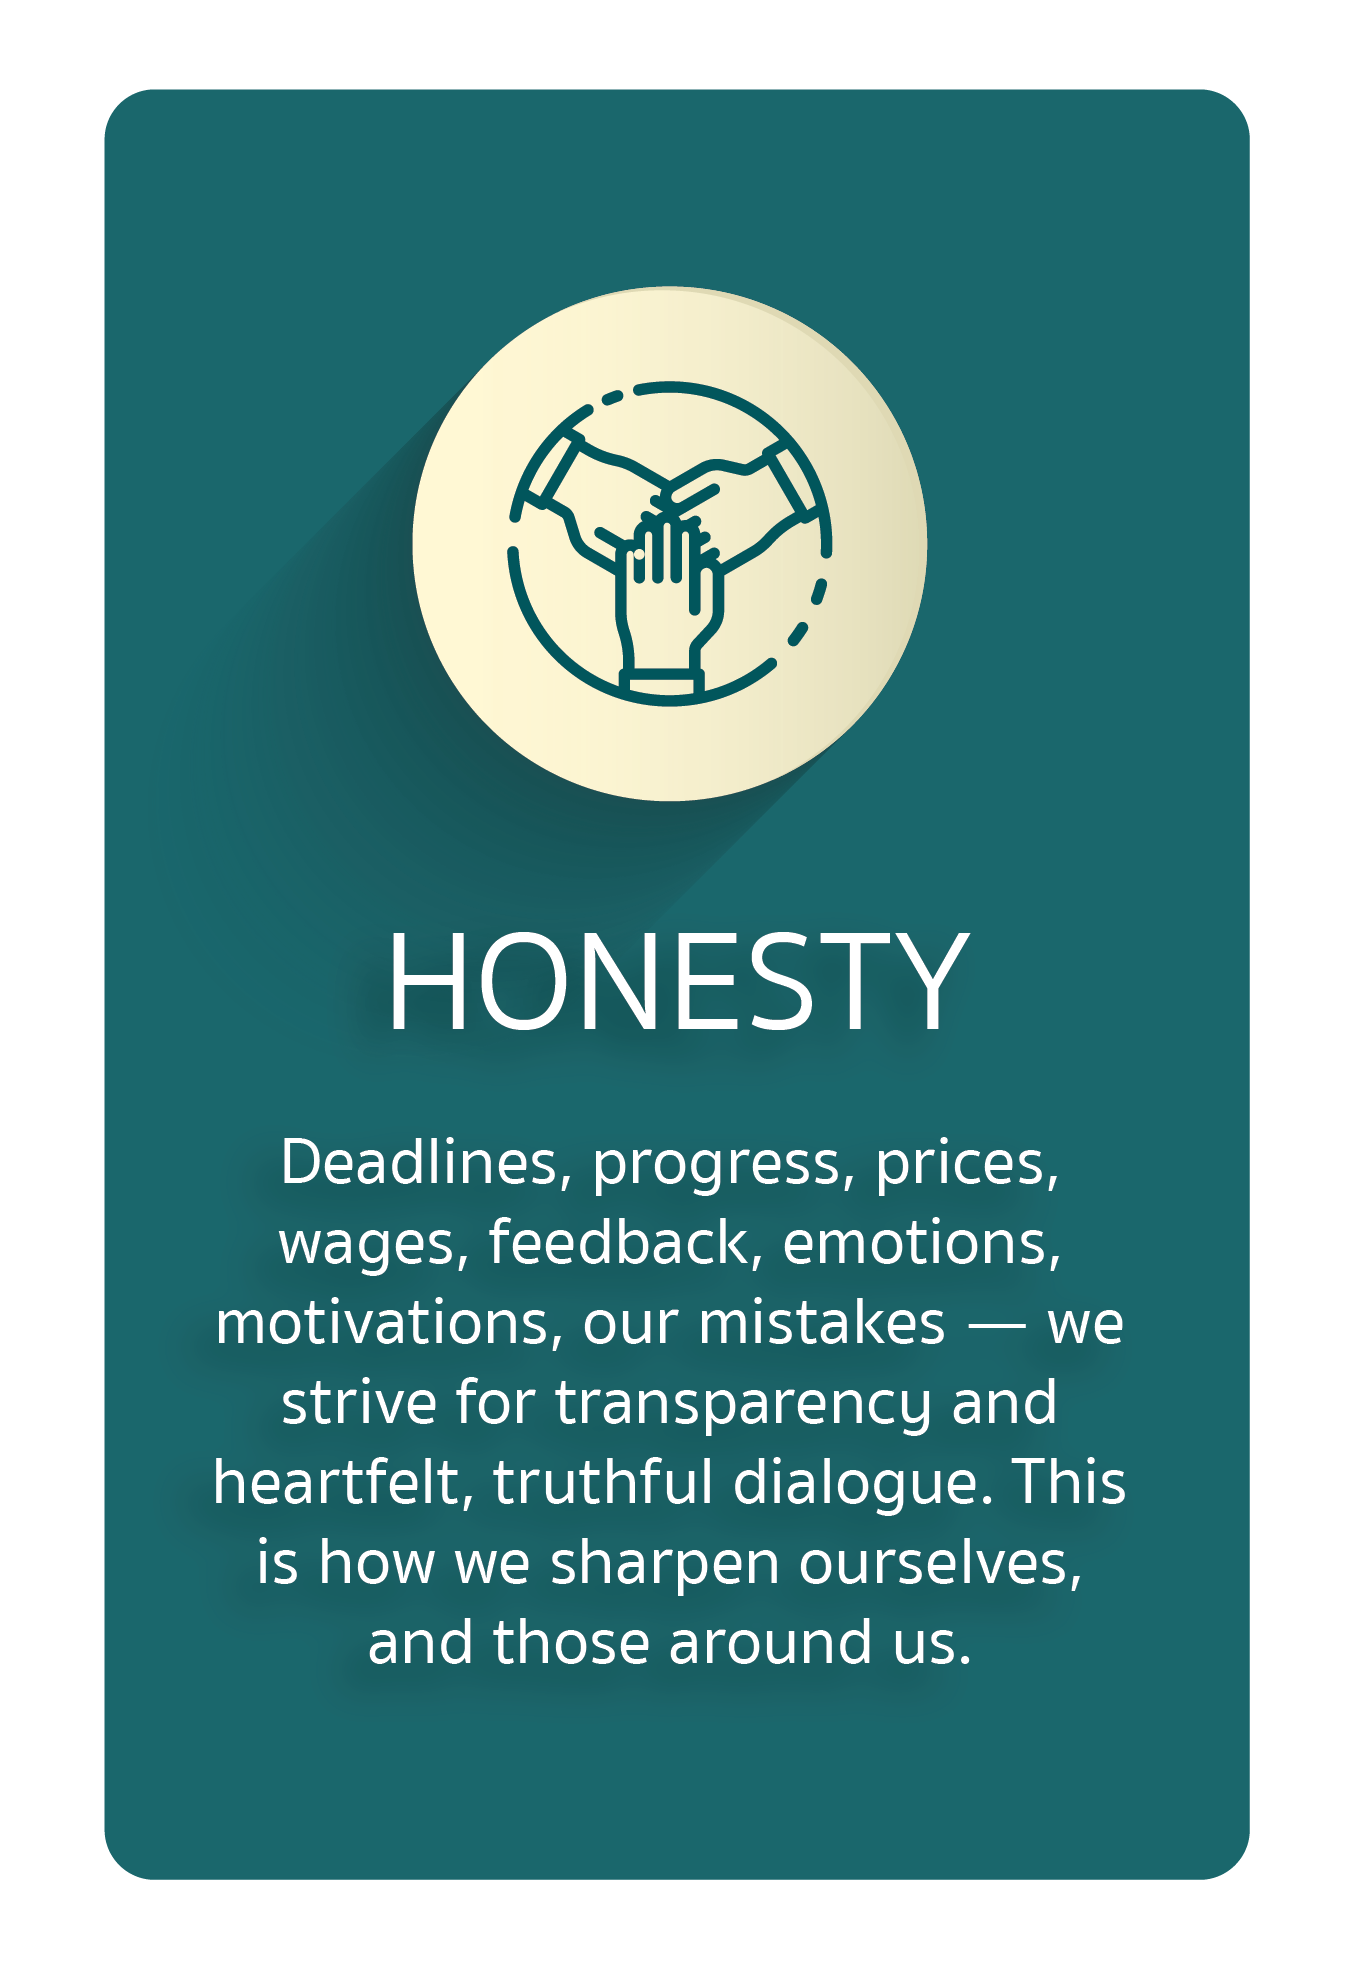 Core Value Honesty